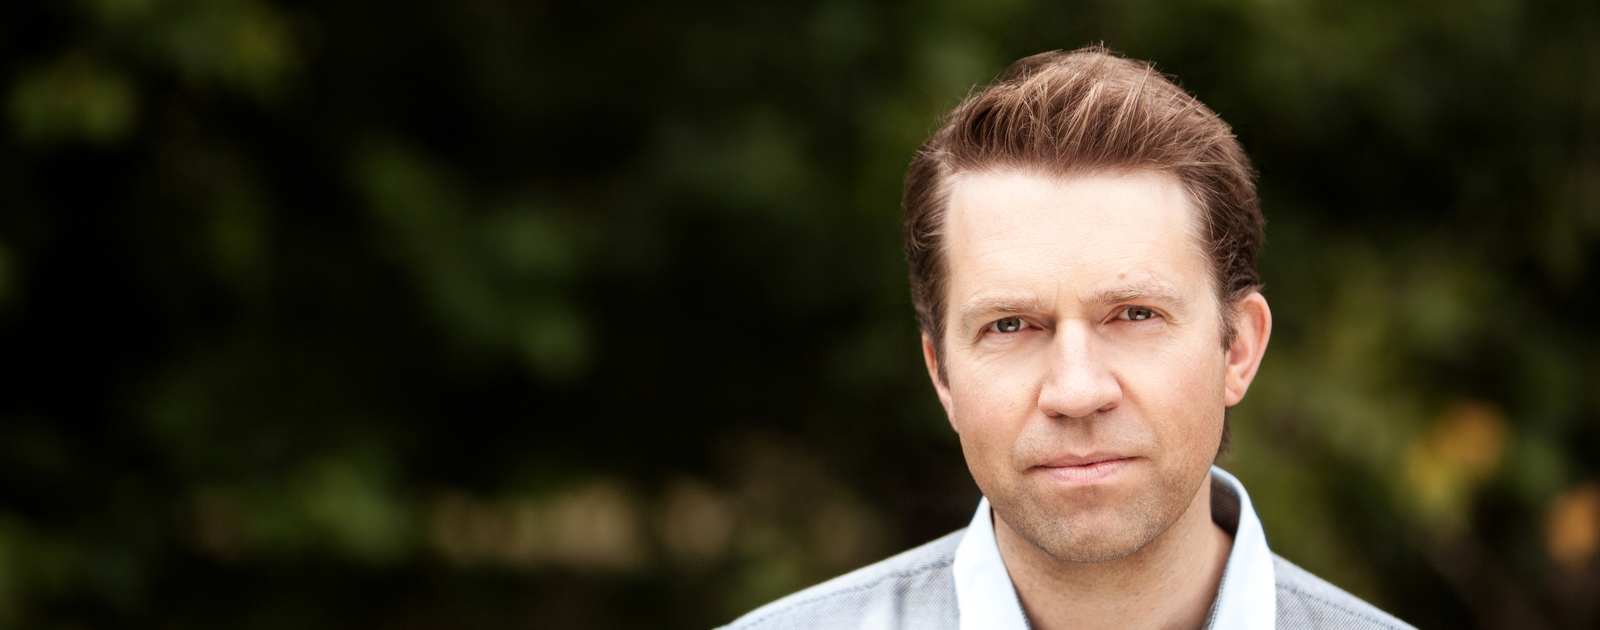 Pianist, LEIF OVE ANDSNES